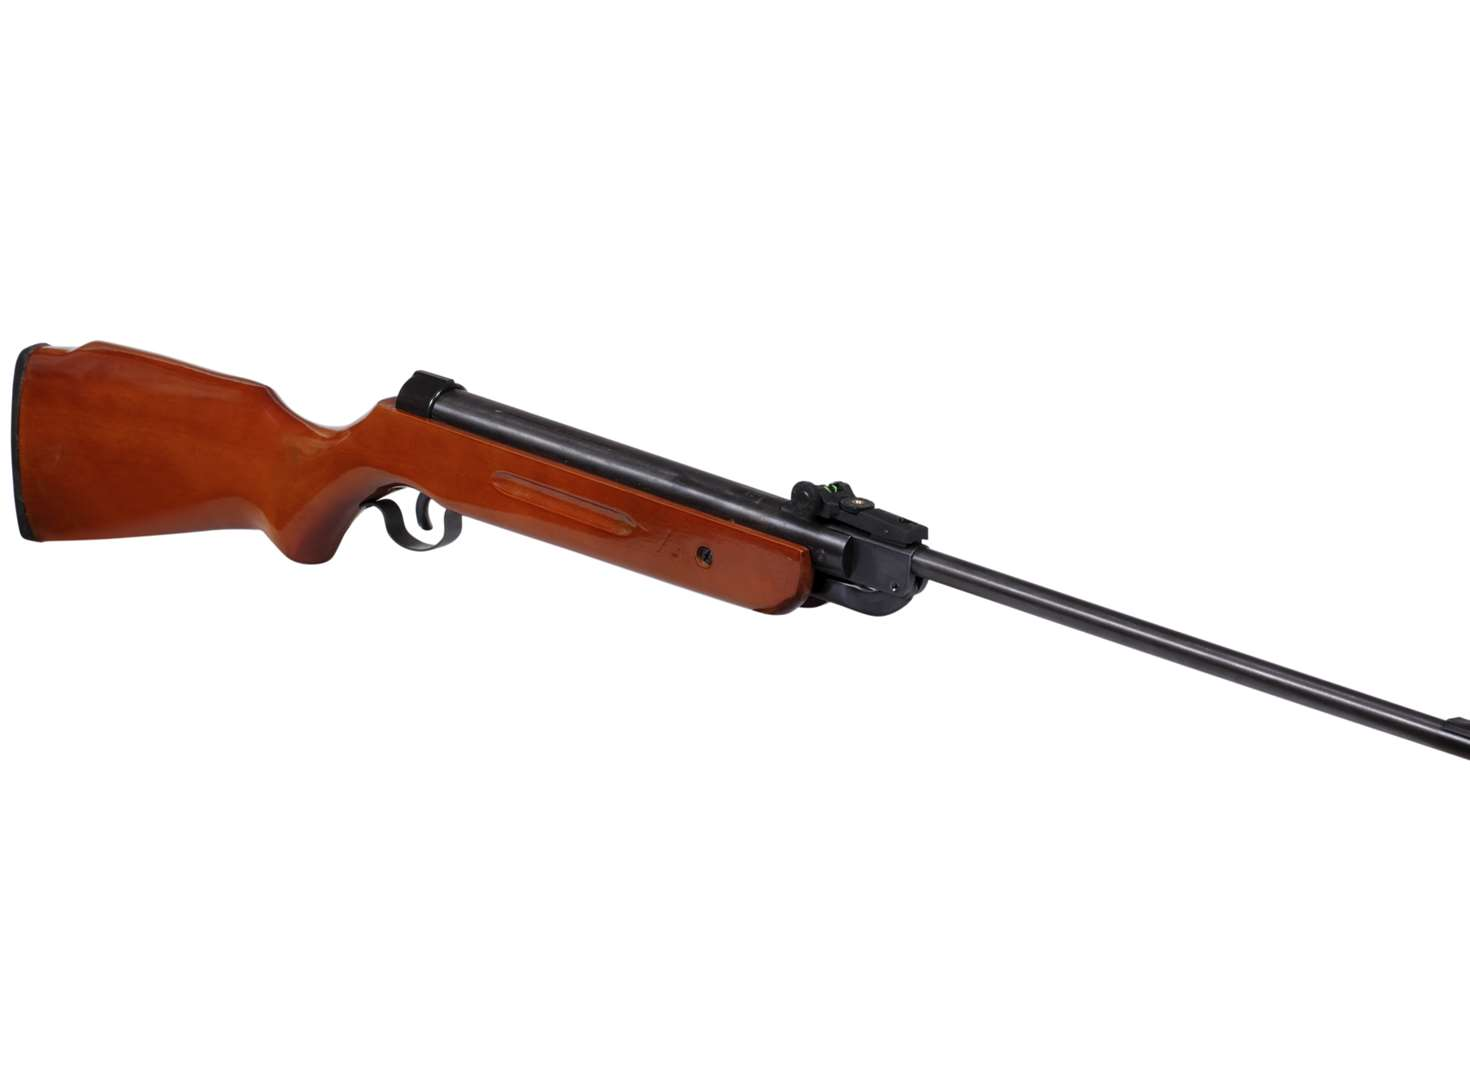 Man charged with carrying air rifle